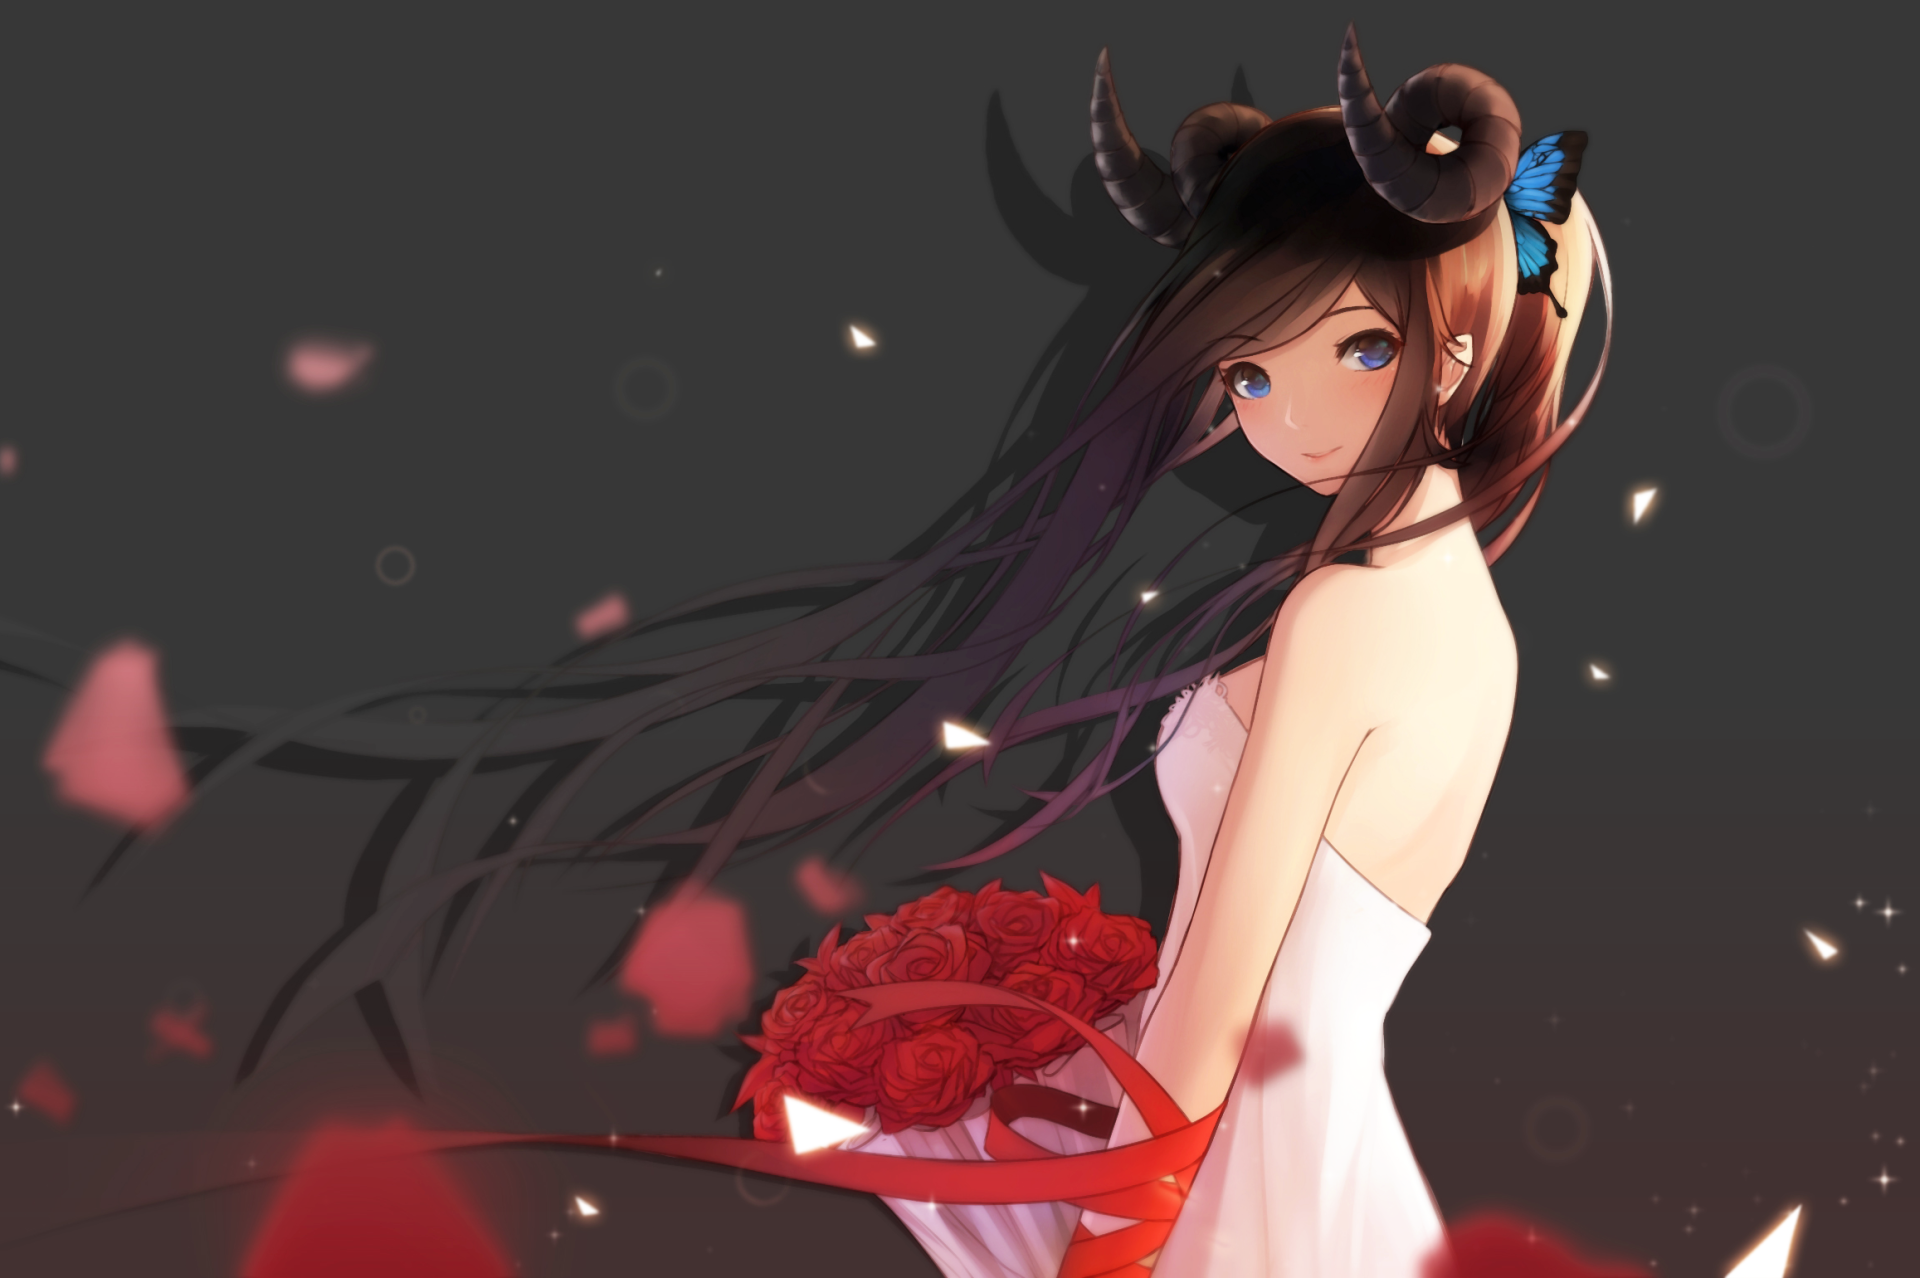 Anime - Original  Girl Rose Horns Dress Wallpaper